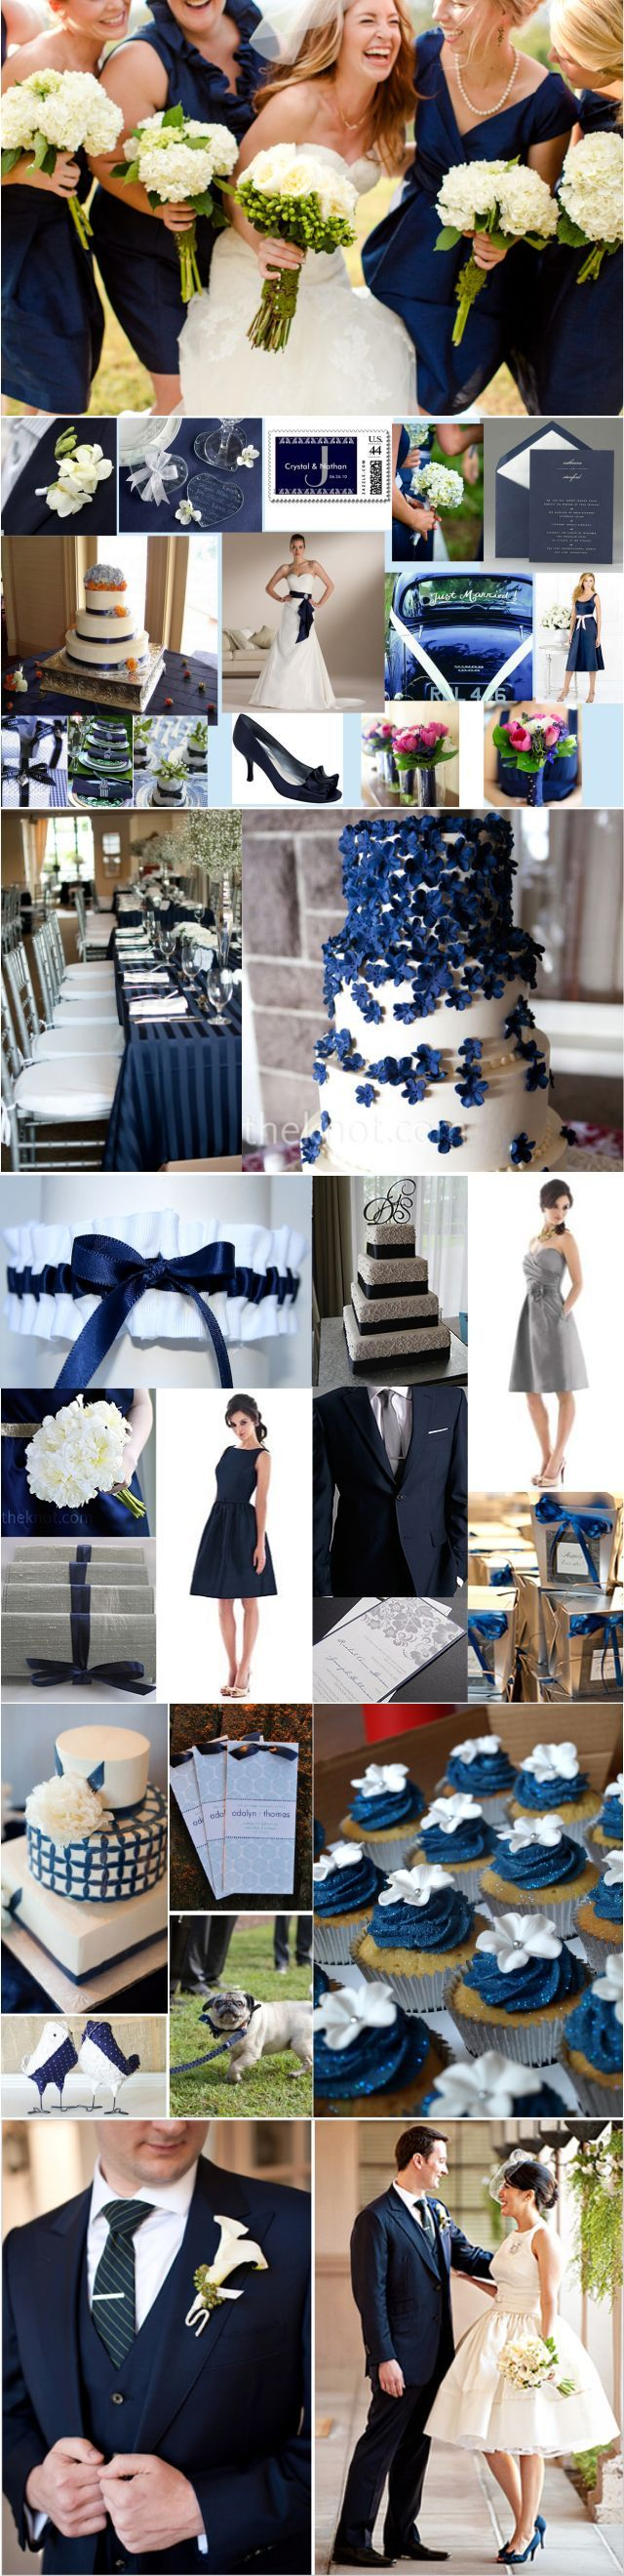 Ideas creativas para decorar tu boda en color azul y blanco